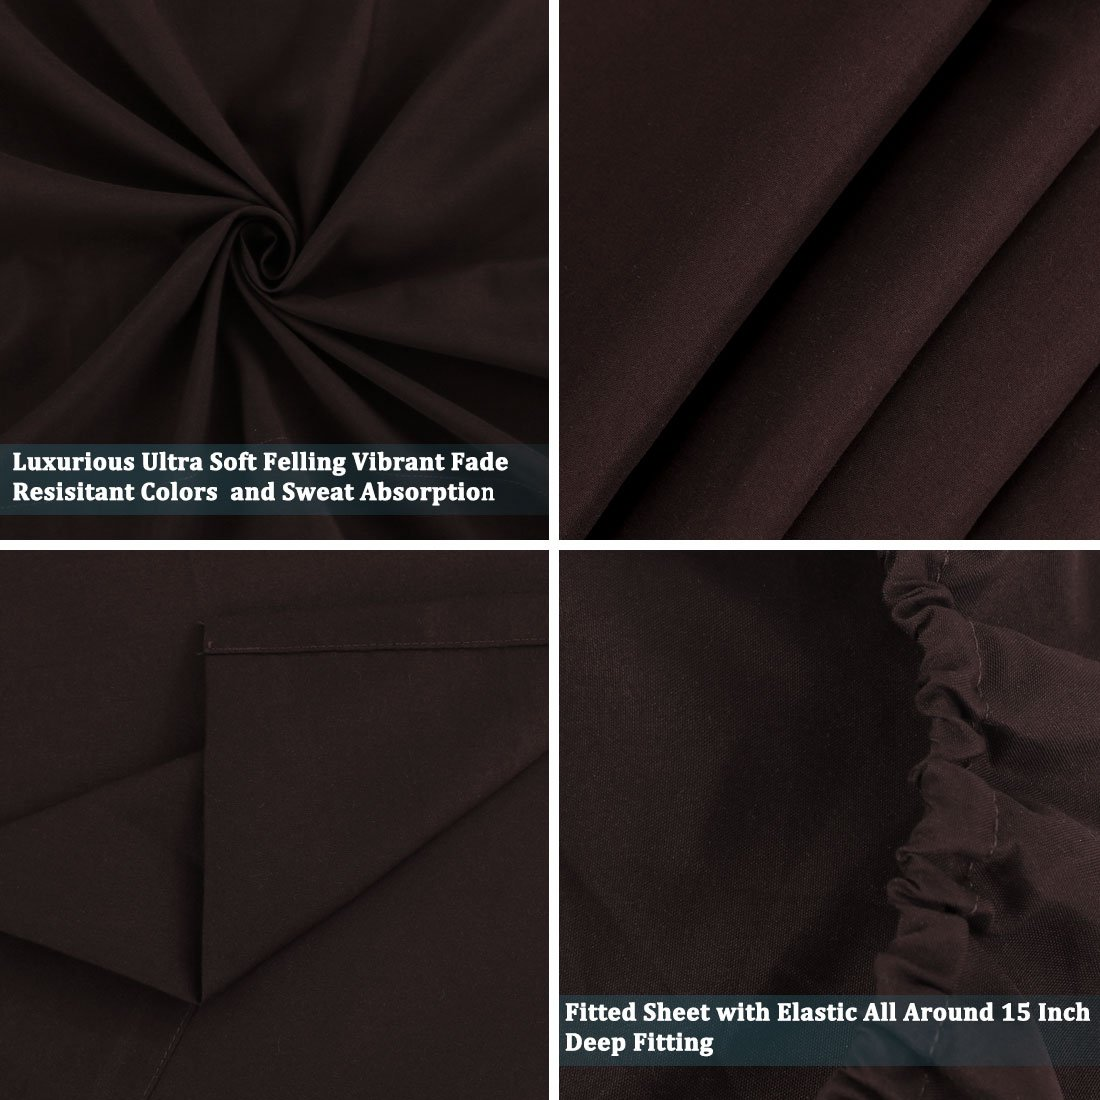 Sourcingmap 4-Pieces Full Sheet Set Microfiber Brushed Fabric Wrinkle and Fade Resistant Breathable Comfortable Soft Dark Brown